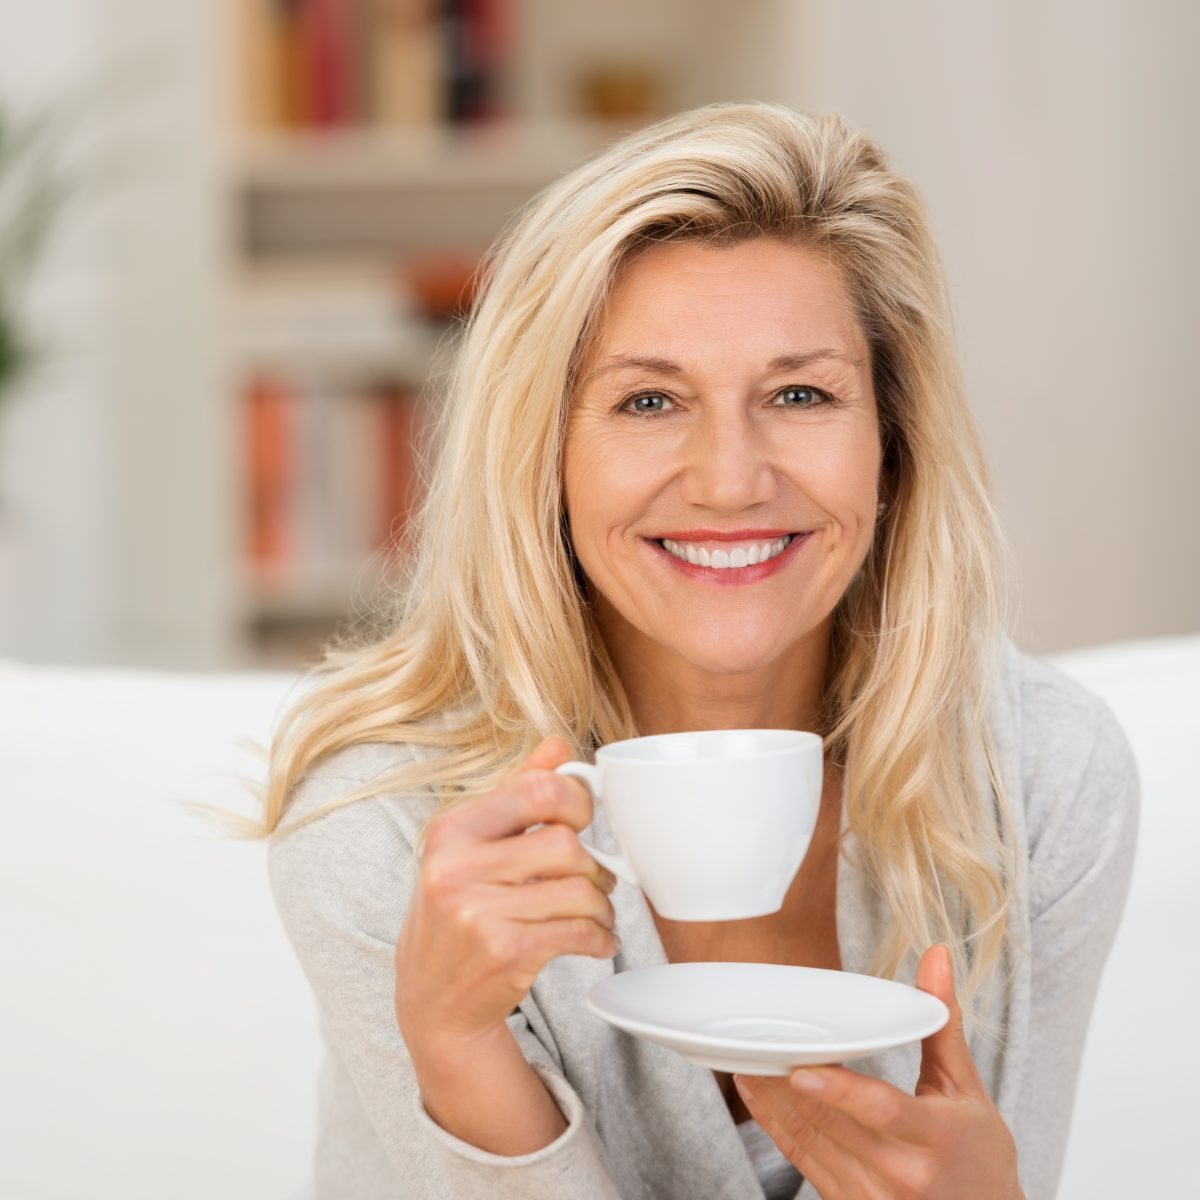 Researchers Found that Coffee Consumption Reduces the Risk of Developing Endometrial Cancer